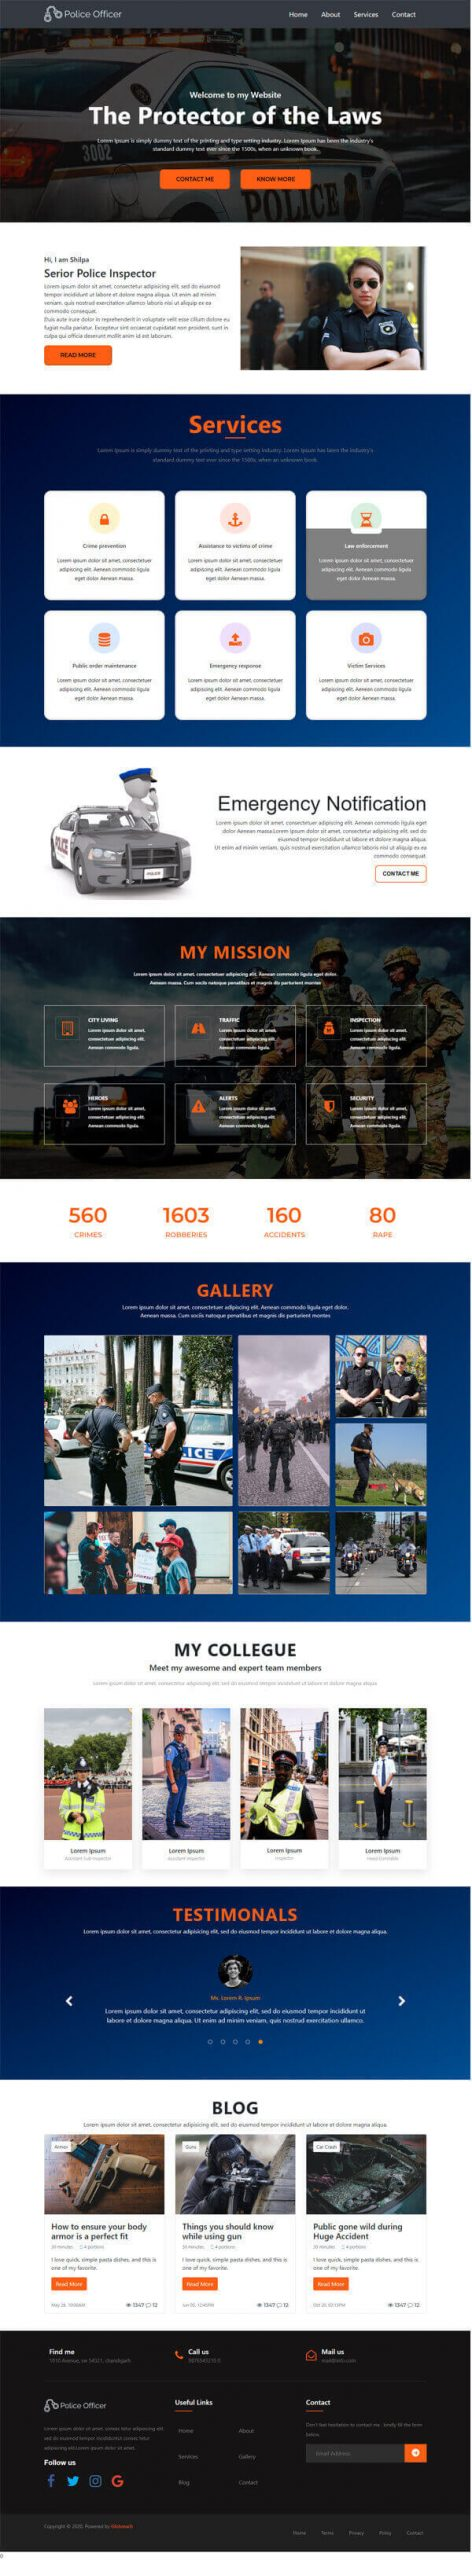 Uno – Prosecutor & Law Protector HTMLtemplate